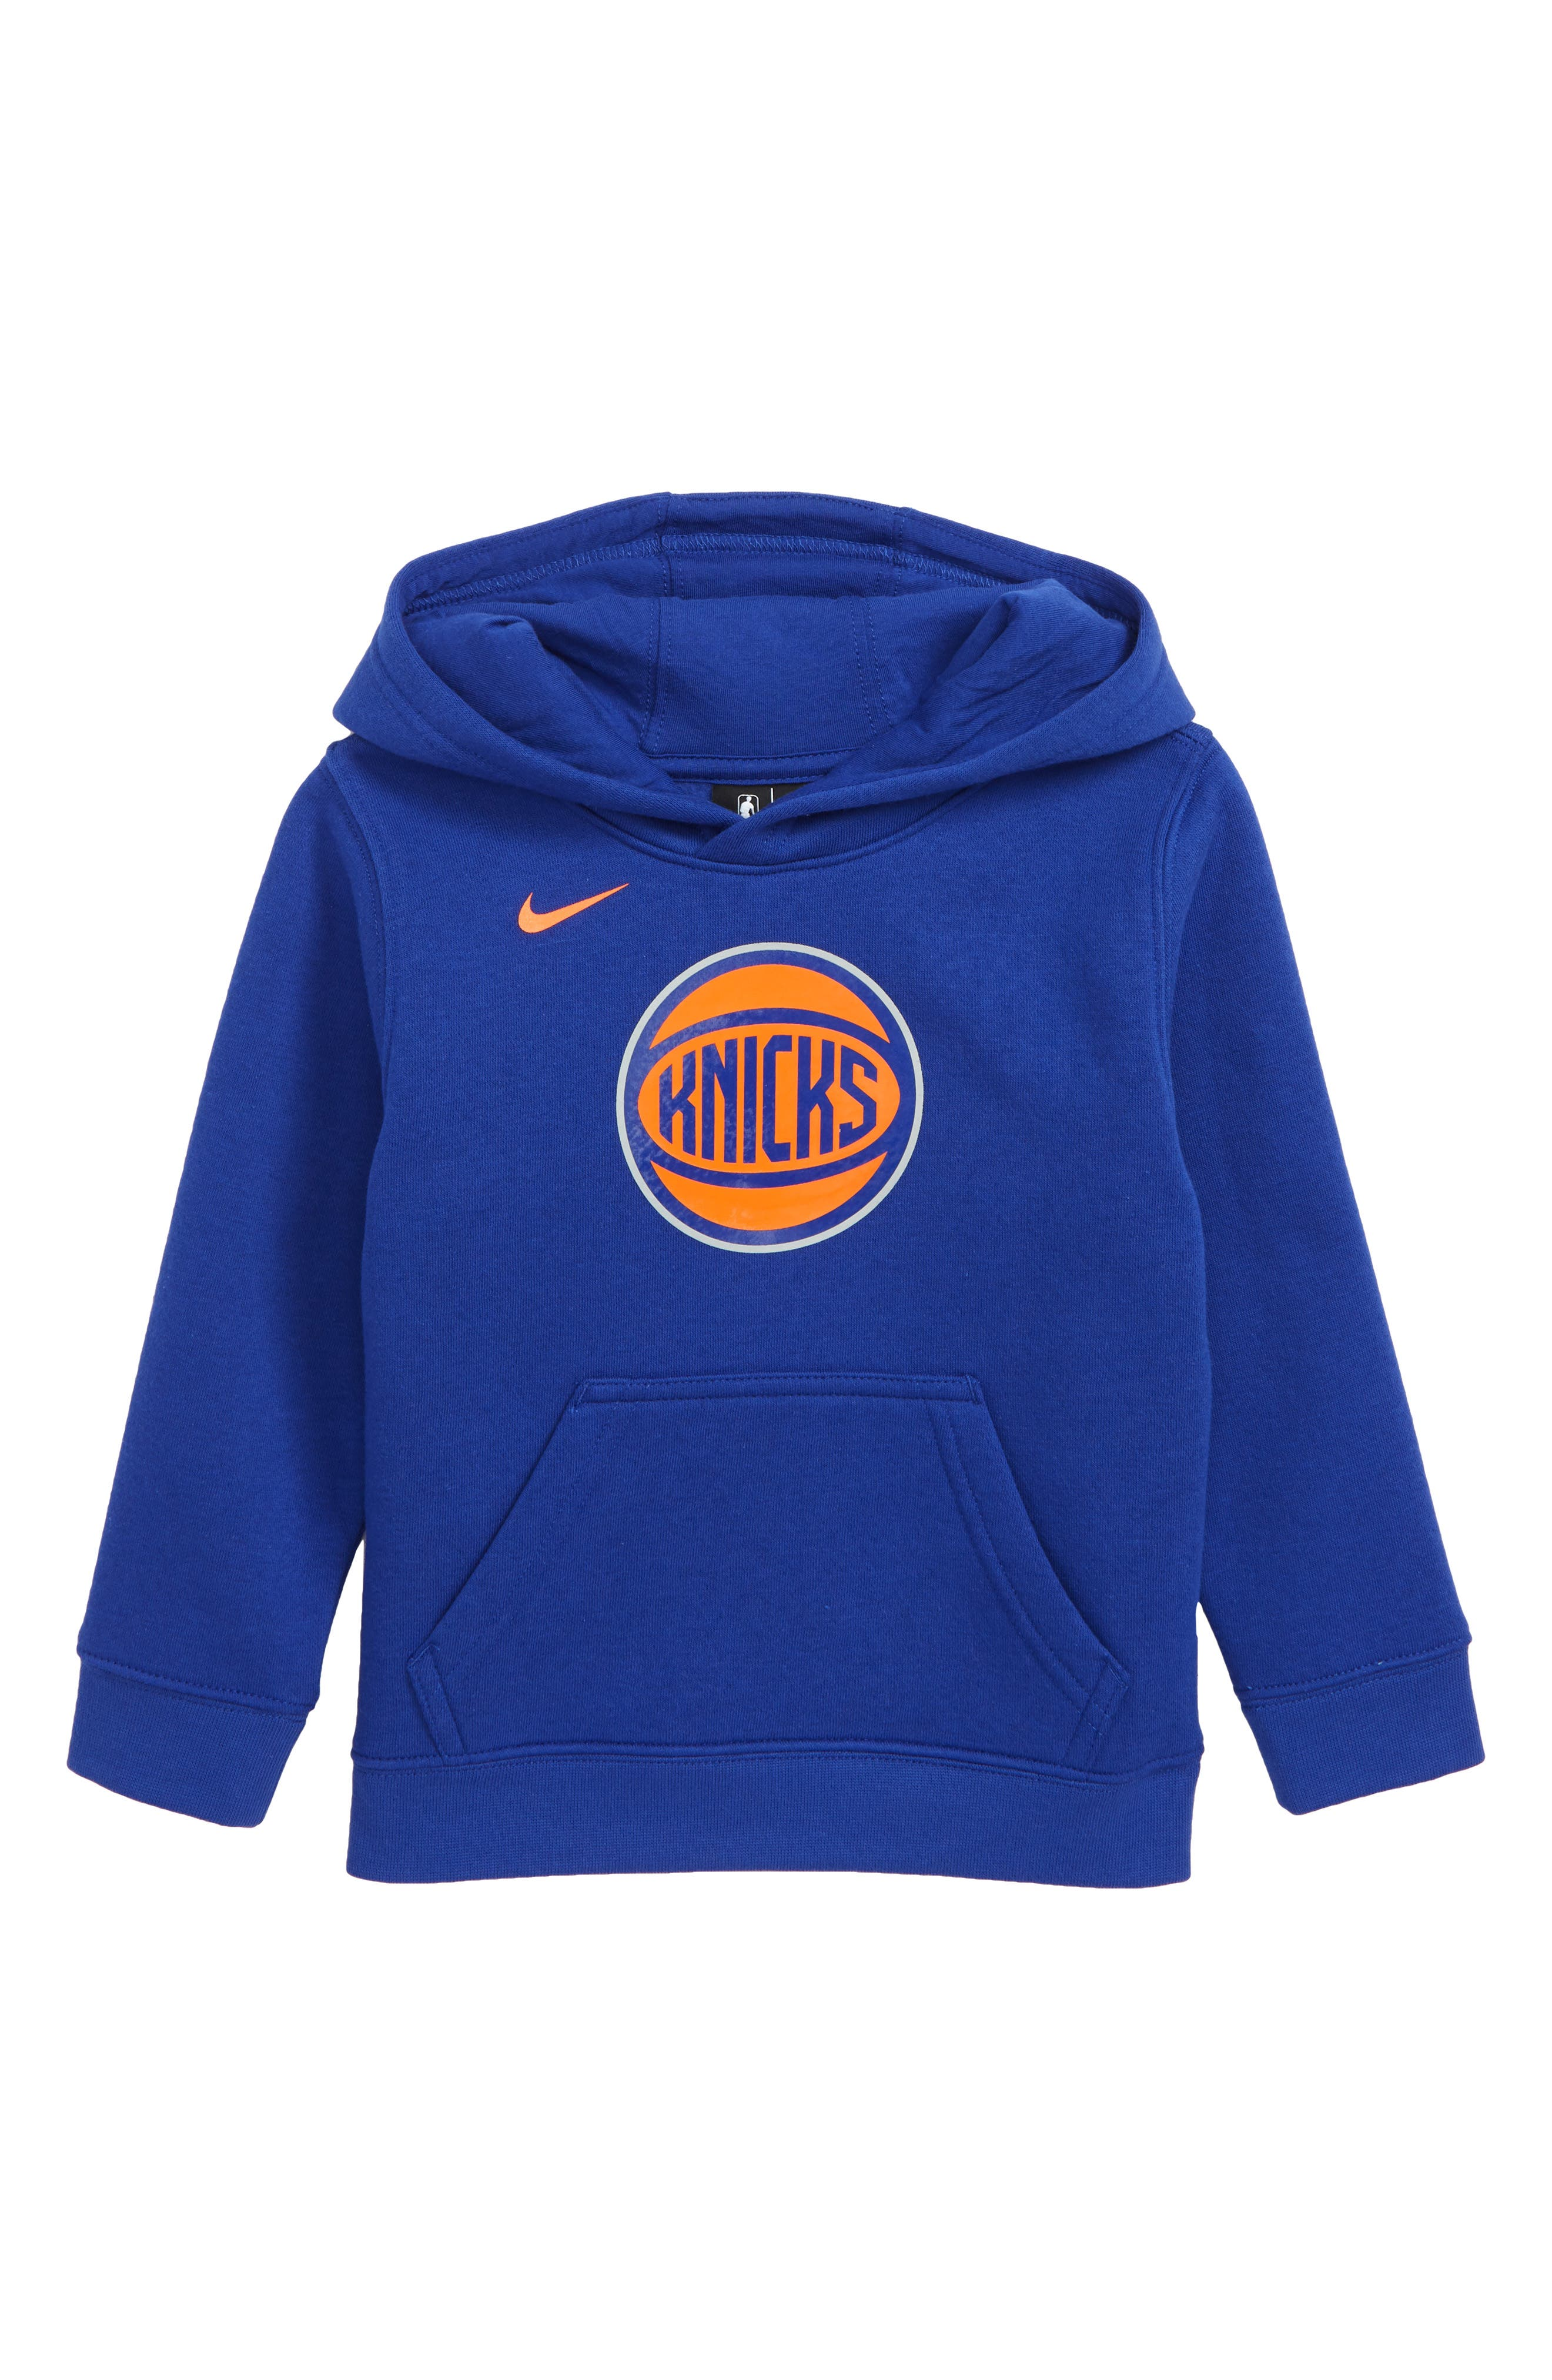 New York Knicks Hoodie,                             Main thumbnail 1, color,                             RUSH BLUE